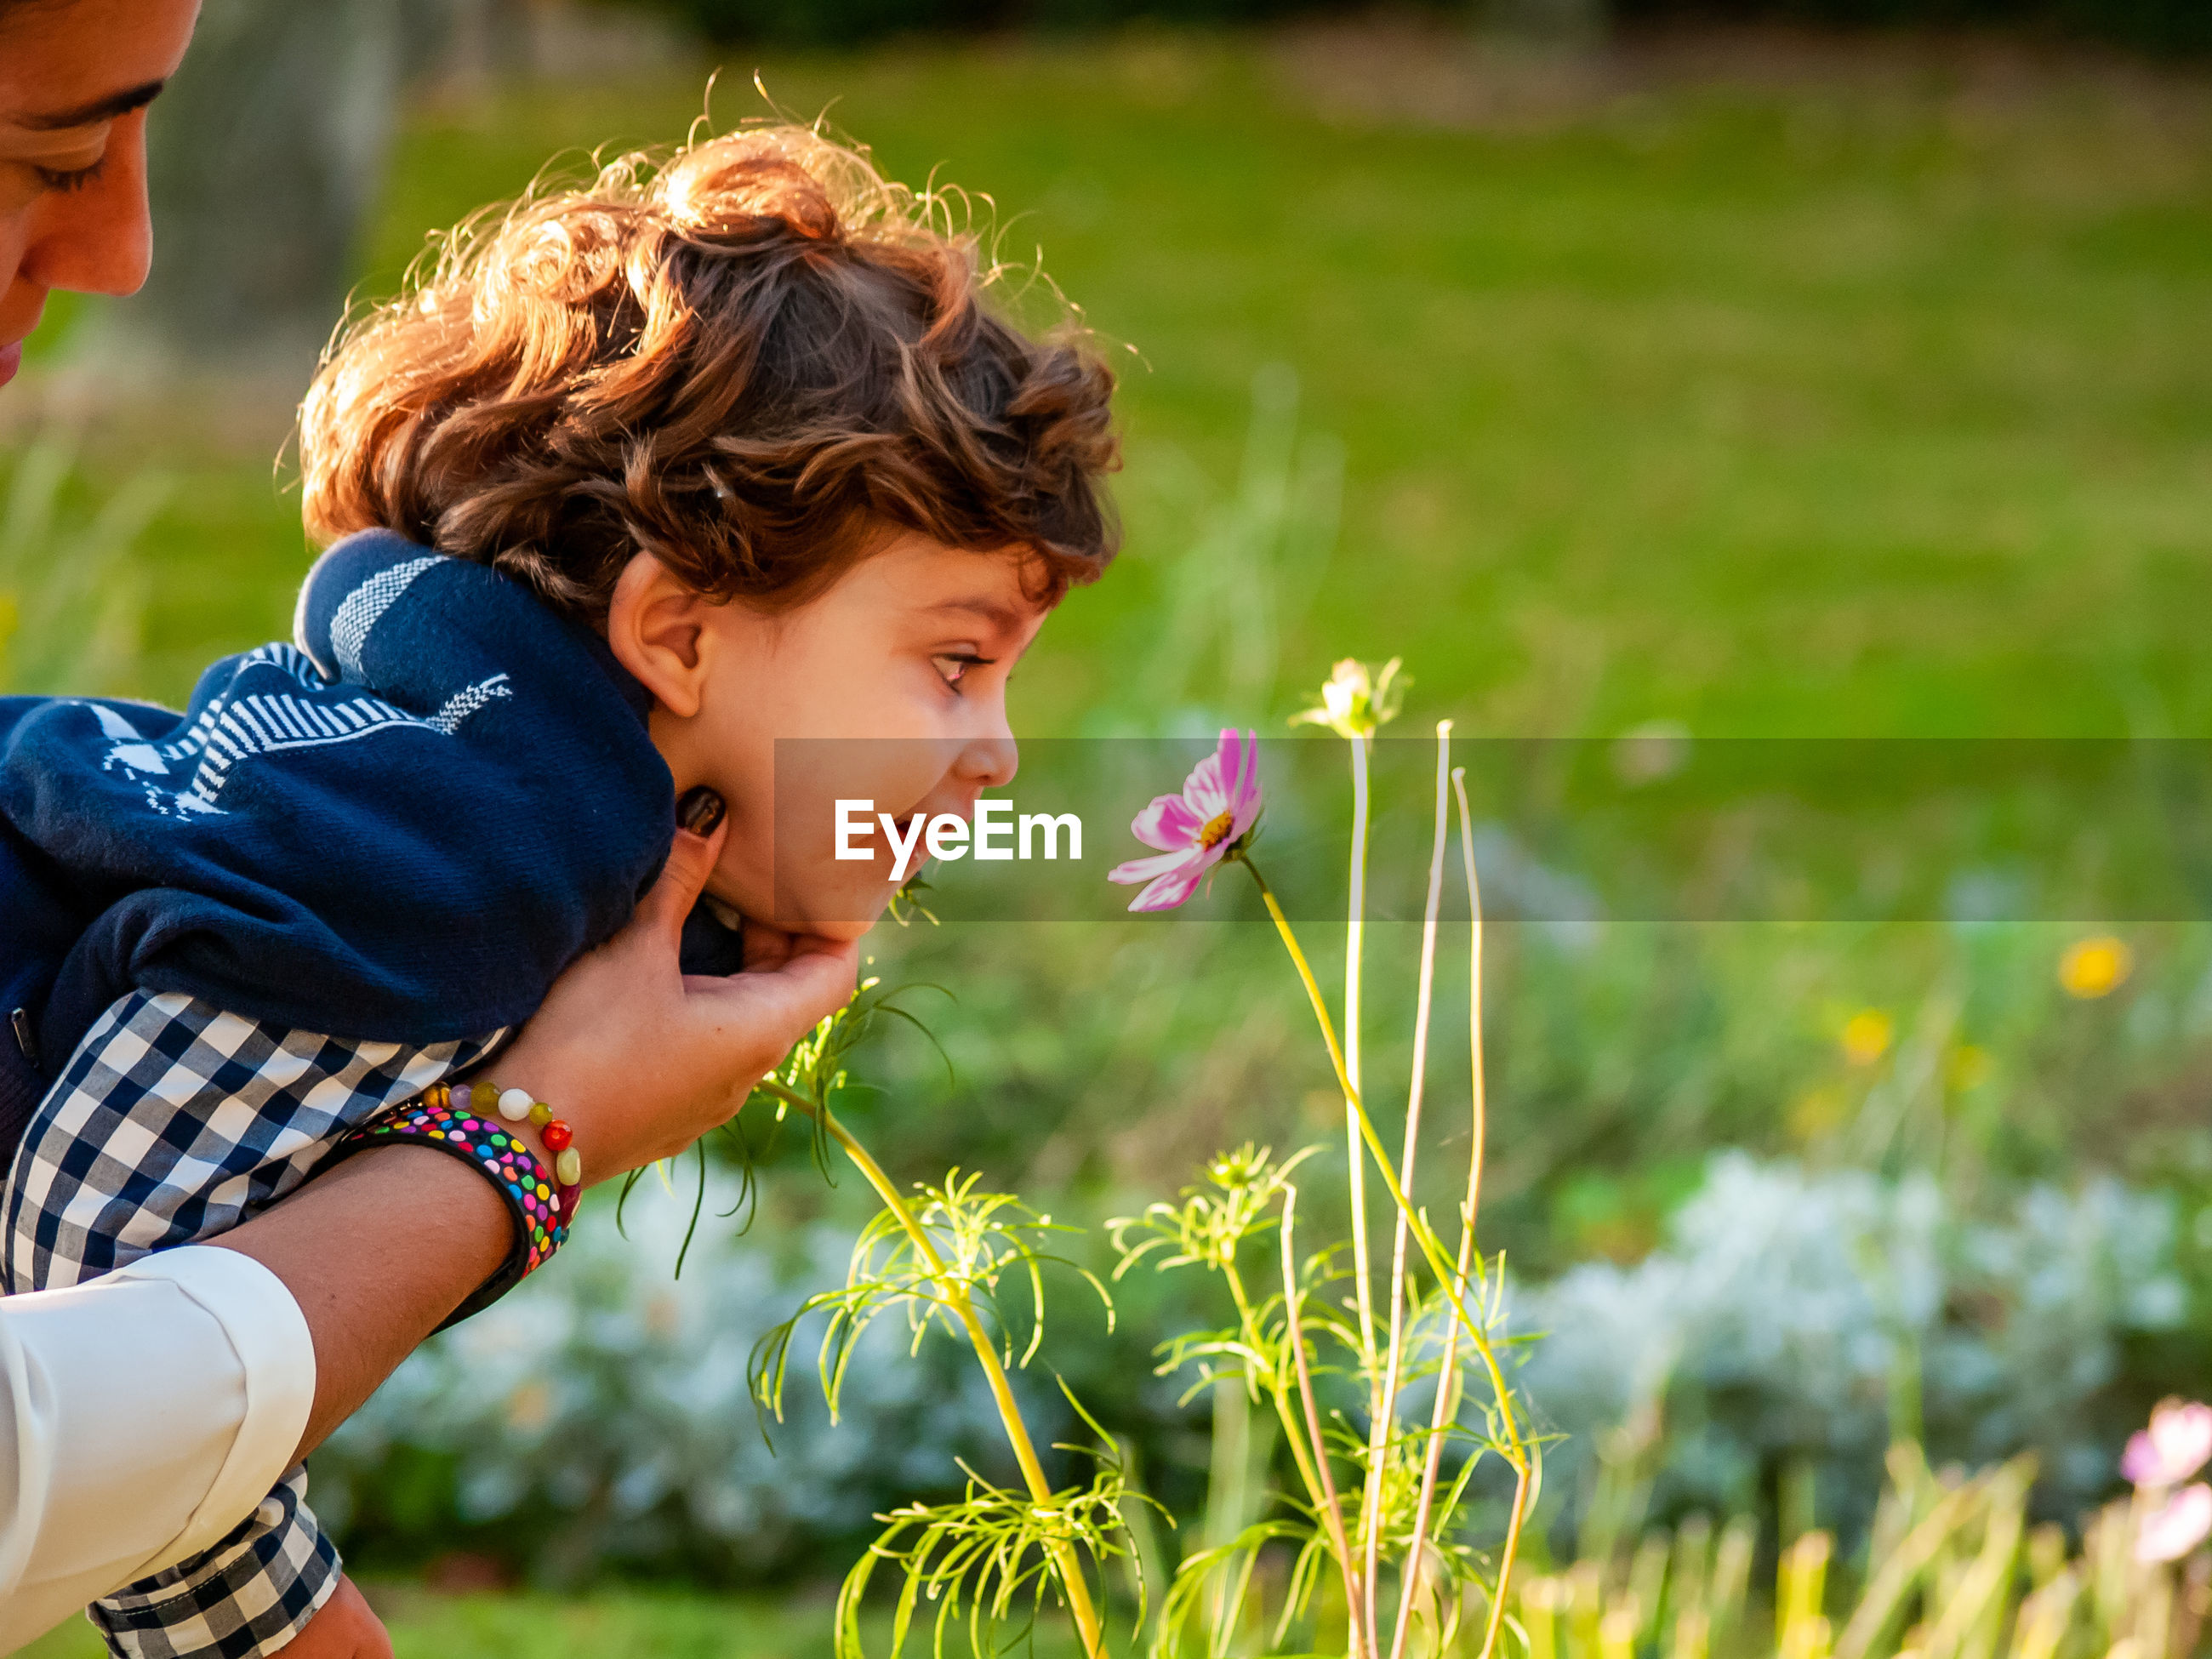 Mother and son looking at blooming flowers in garden